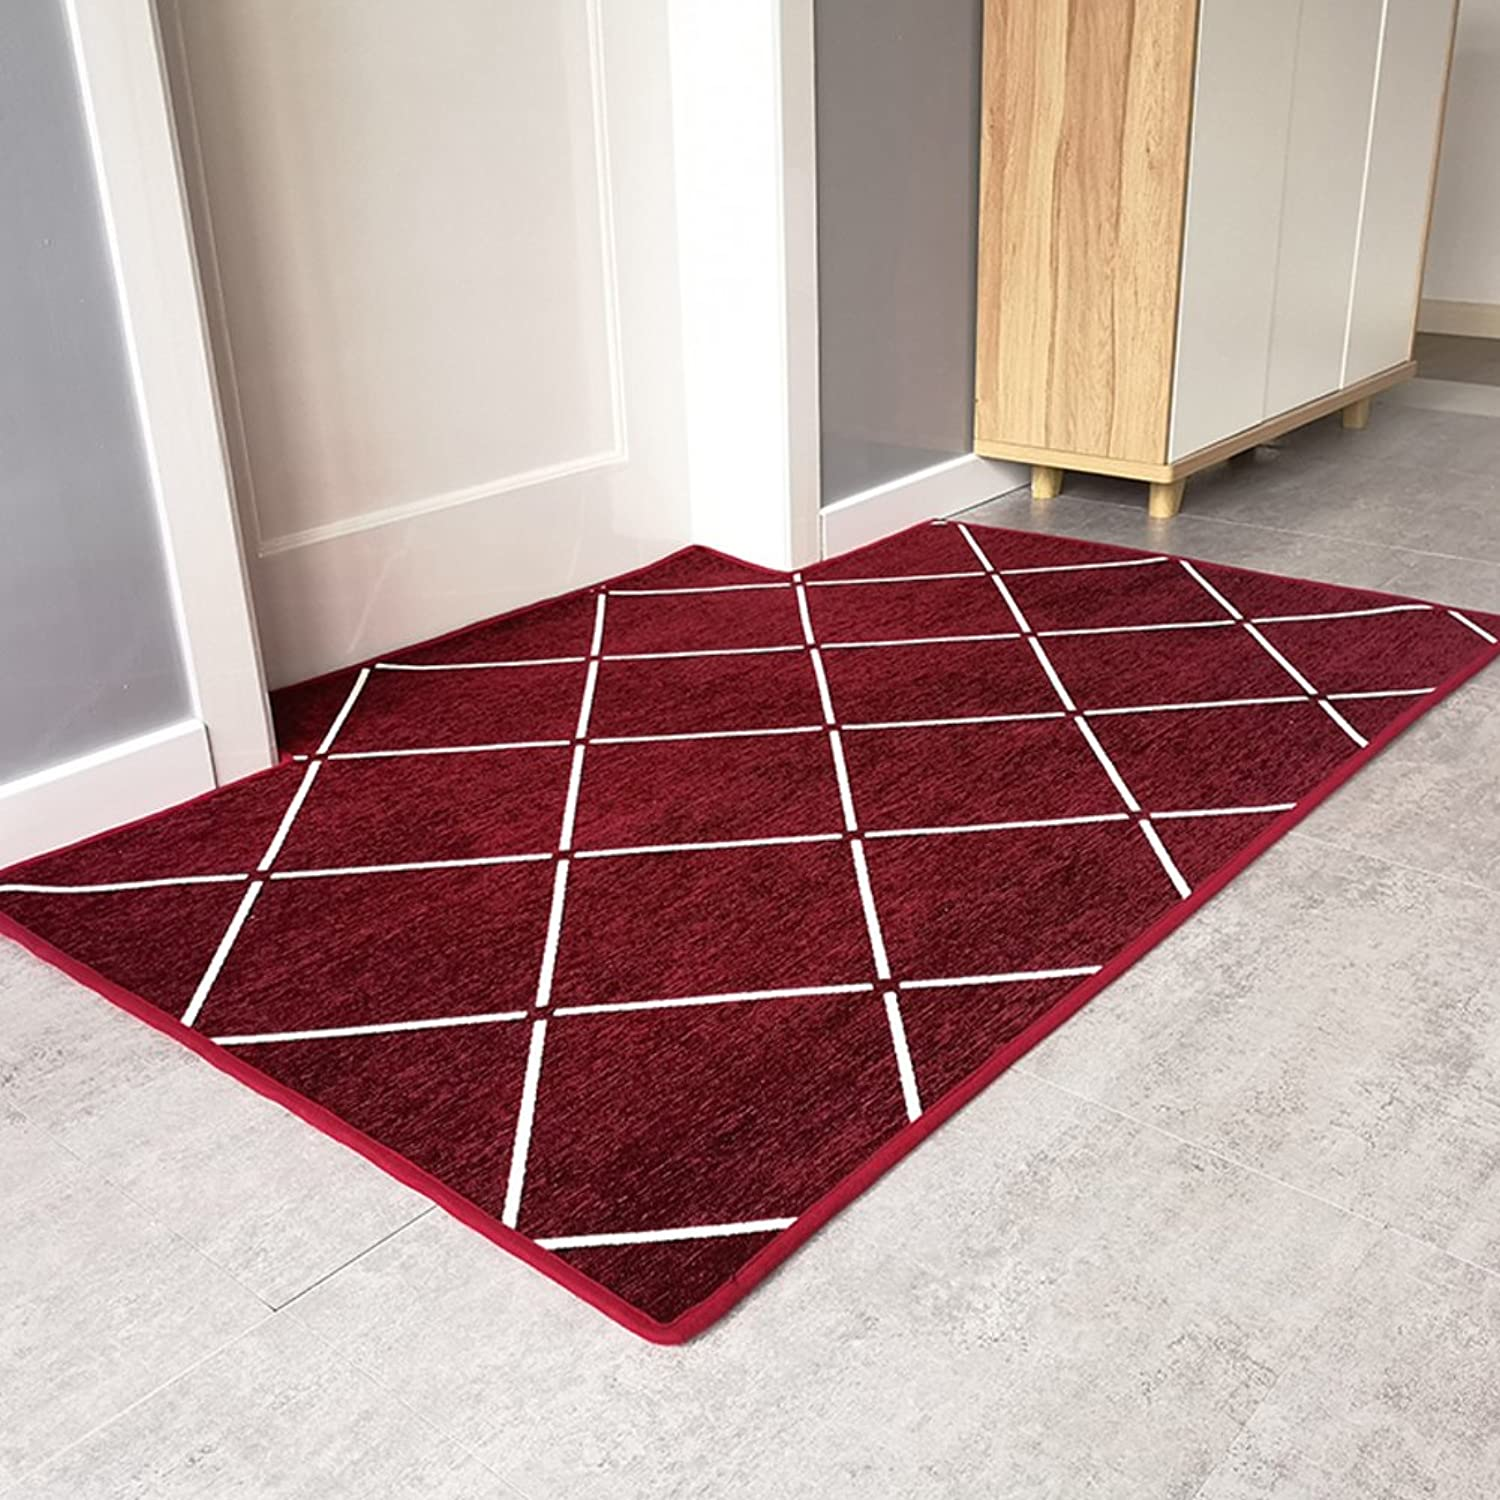 Non Slip Easy Clean Doormat,Super Soft Durable Area Rug Indoor Outdoor Small Mat Modern Plush Carpet Entrance Rug-D 120x160cm(47x63inch)